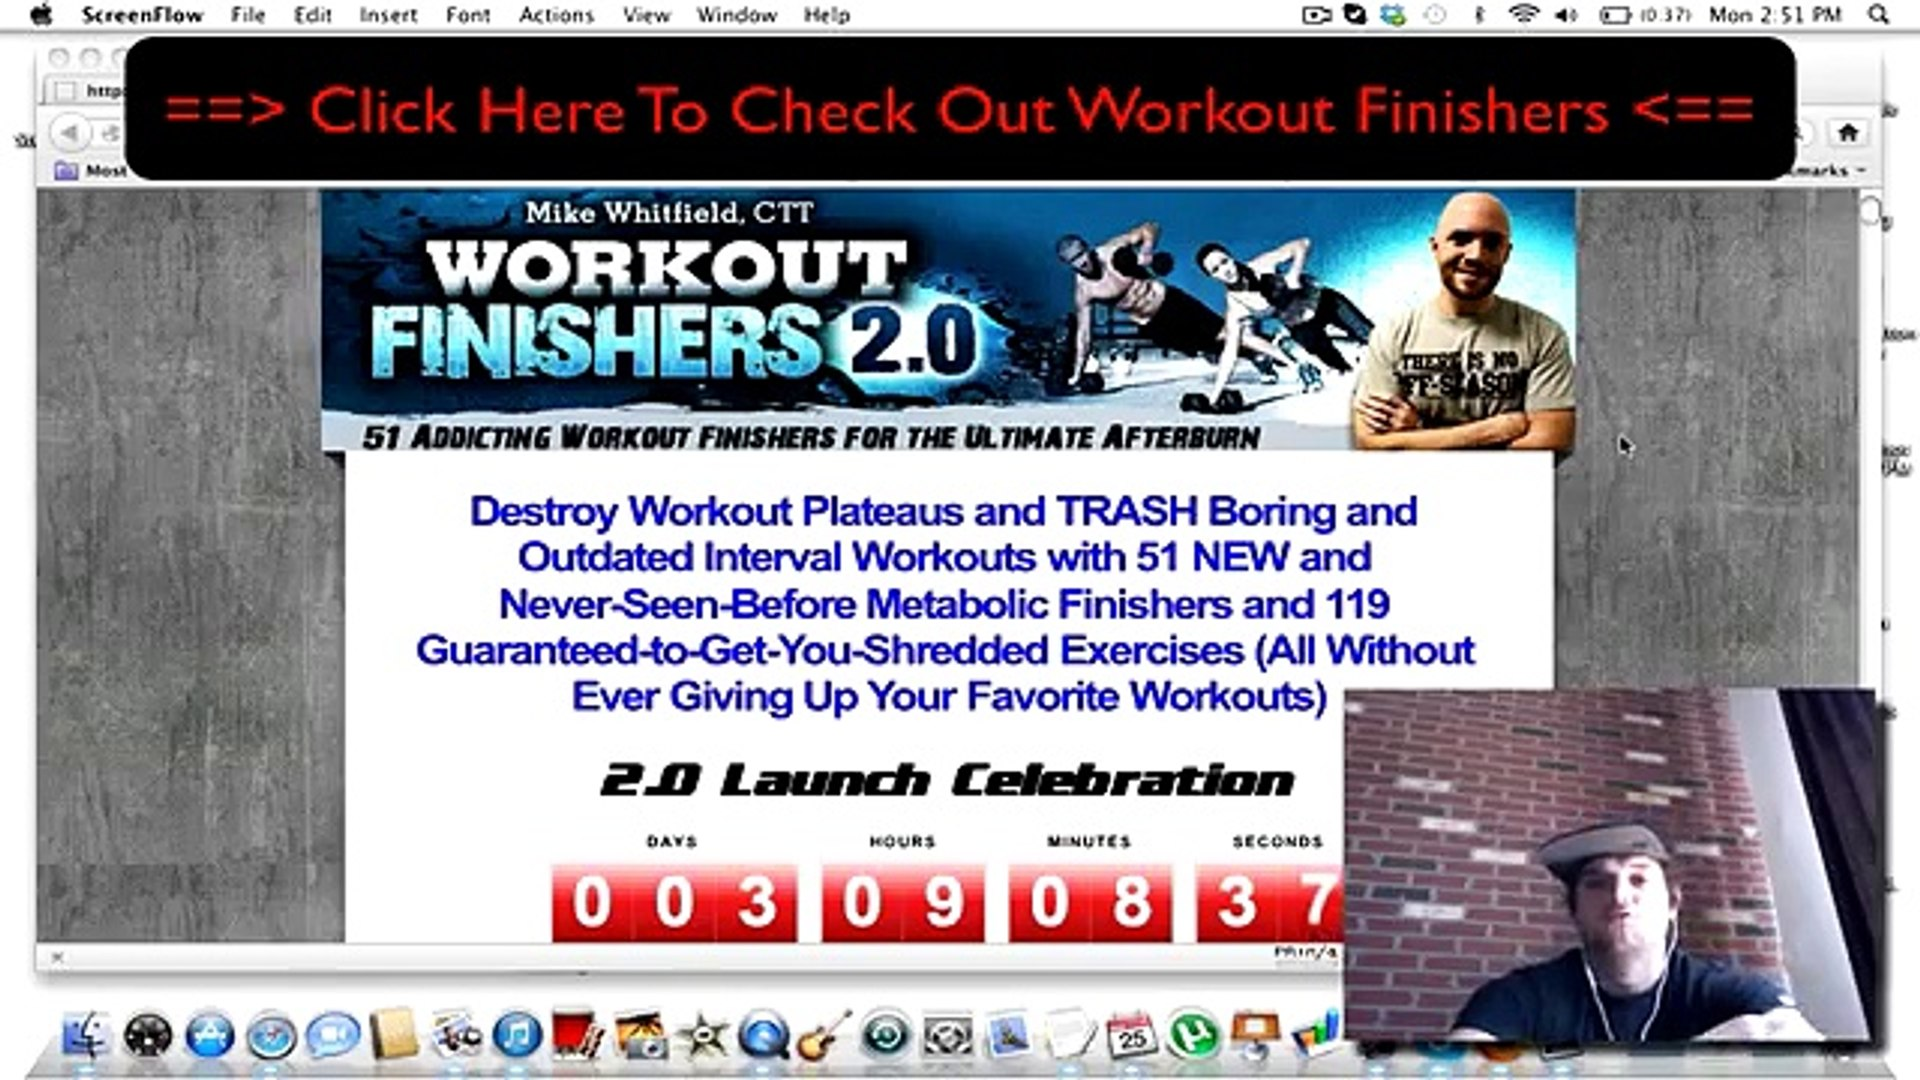 Workout Finishers 2.0 - A NO HOLDS BARRED REVIEW